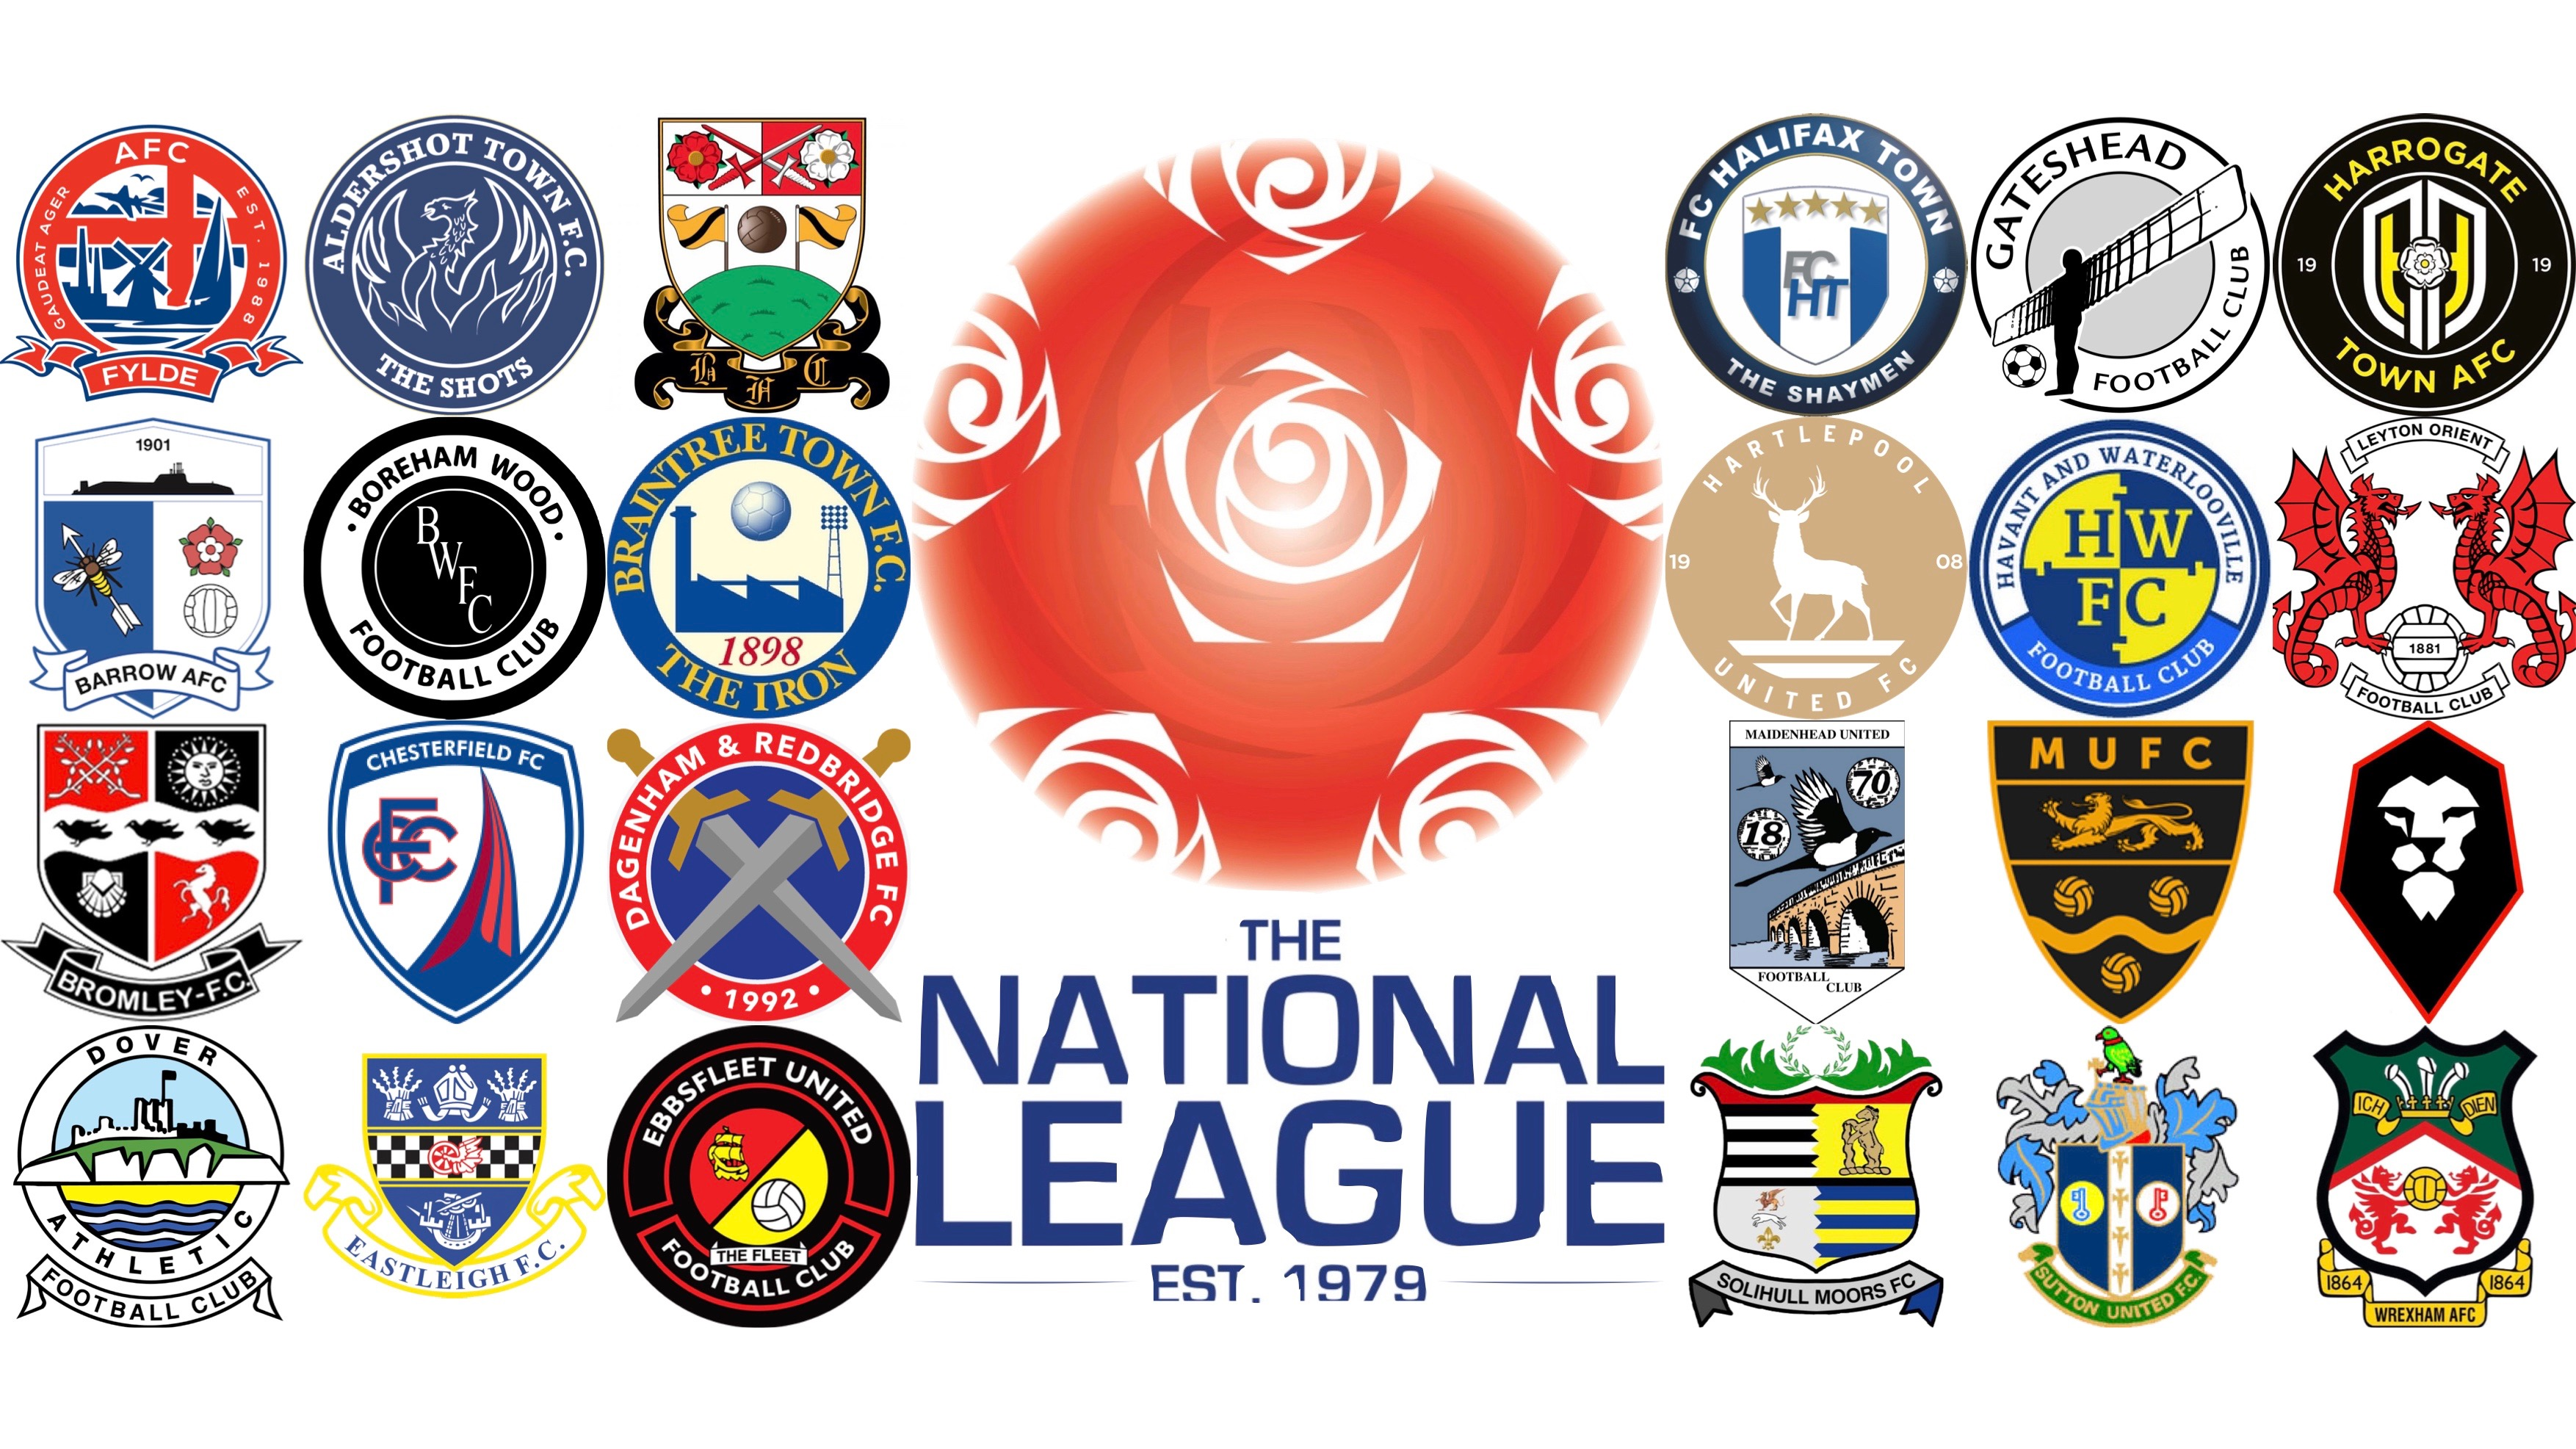 national-league-2018-19-badge-montage-1.jpg